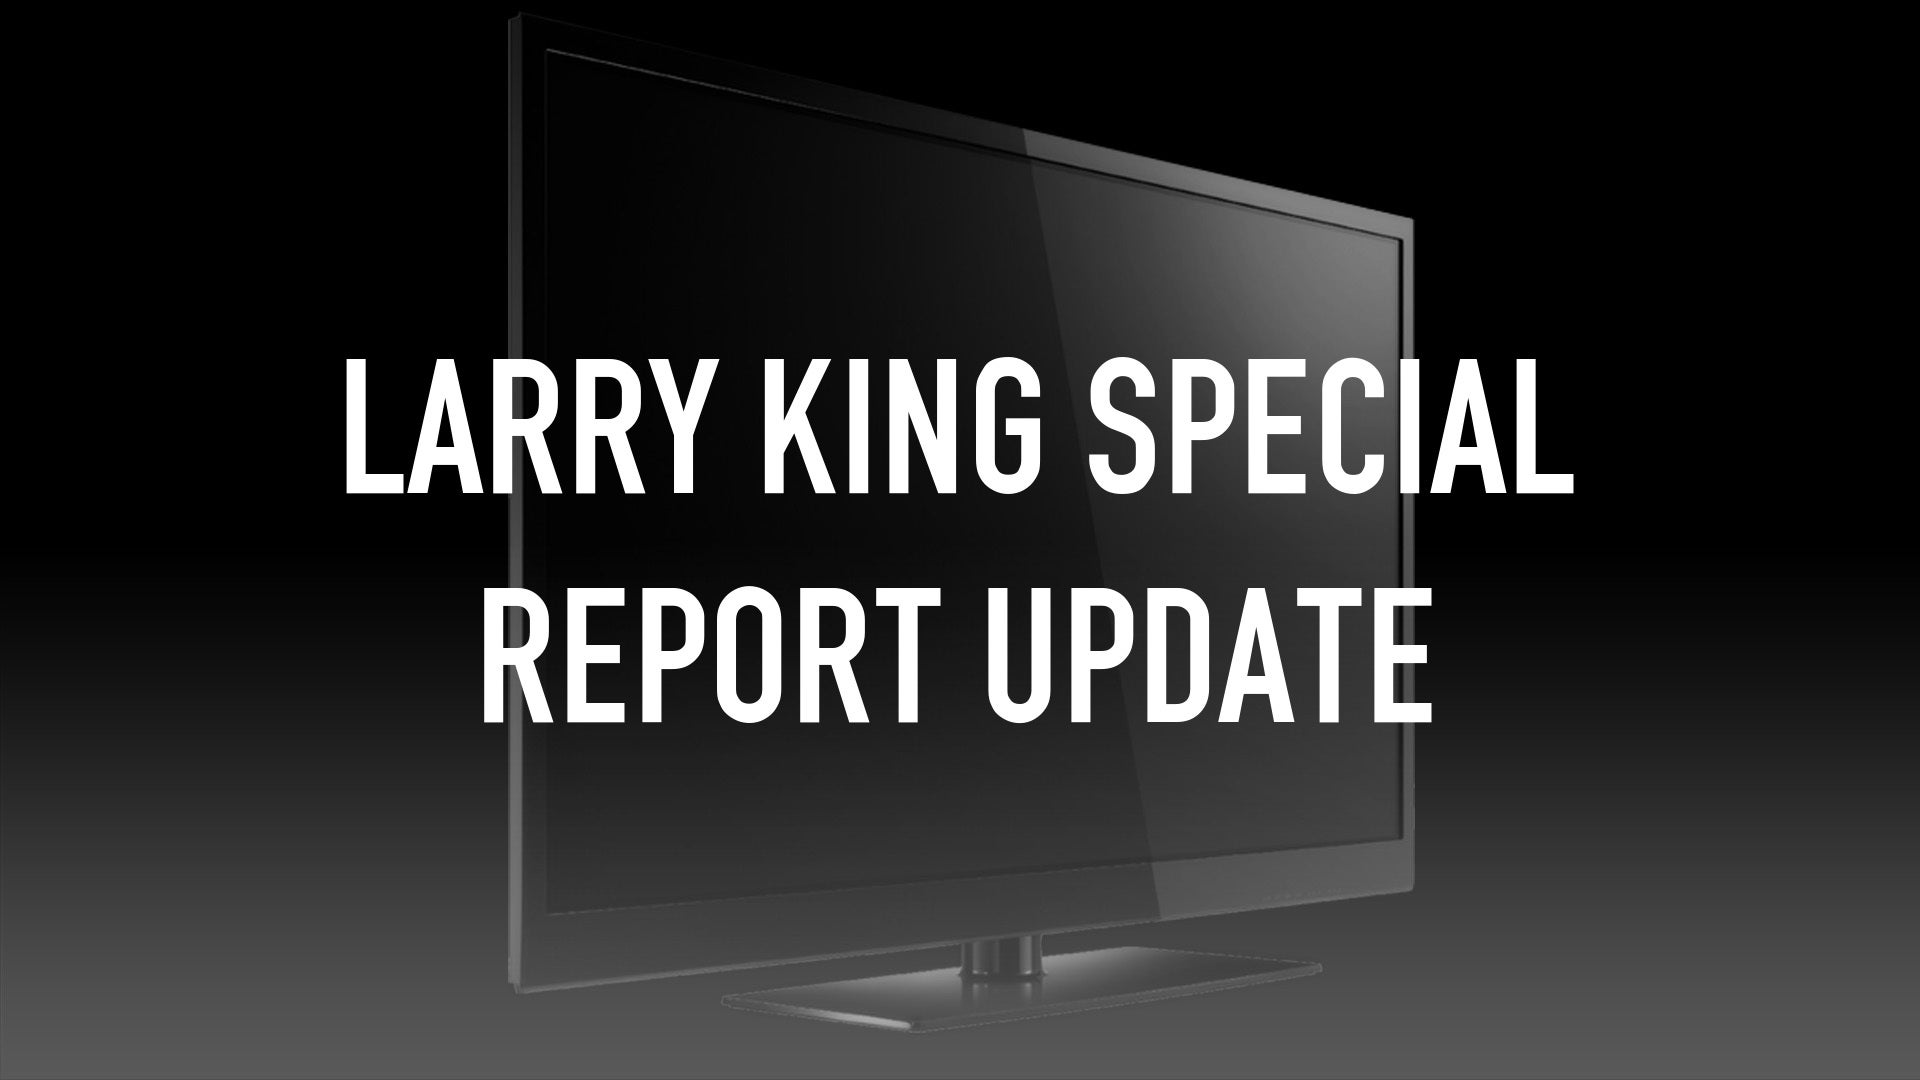 Larry King Special Report UPDATE